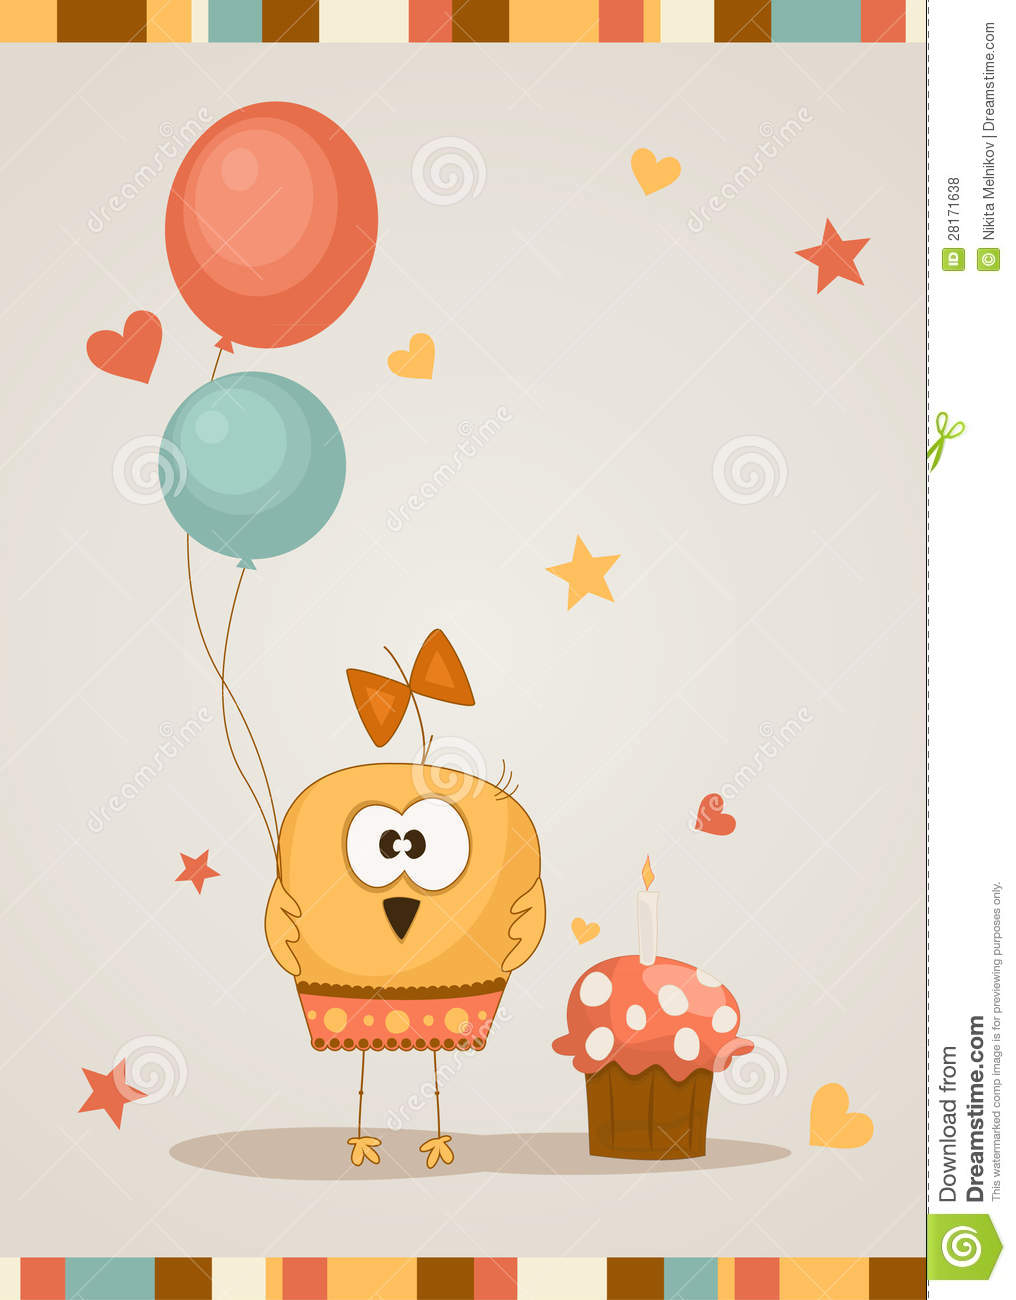 Cute Happy Birthday Card Vector Illustration Royalty Free – Unique Happy Birthday Greetings